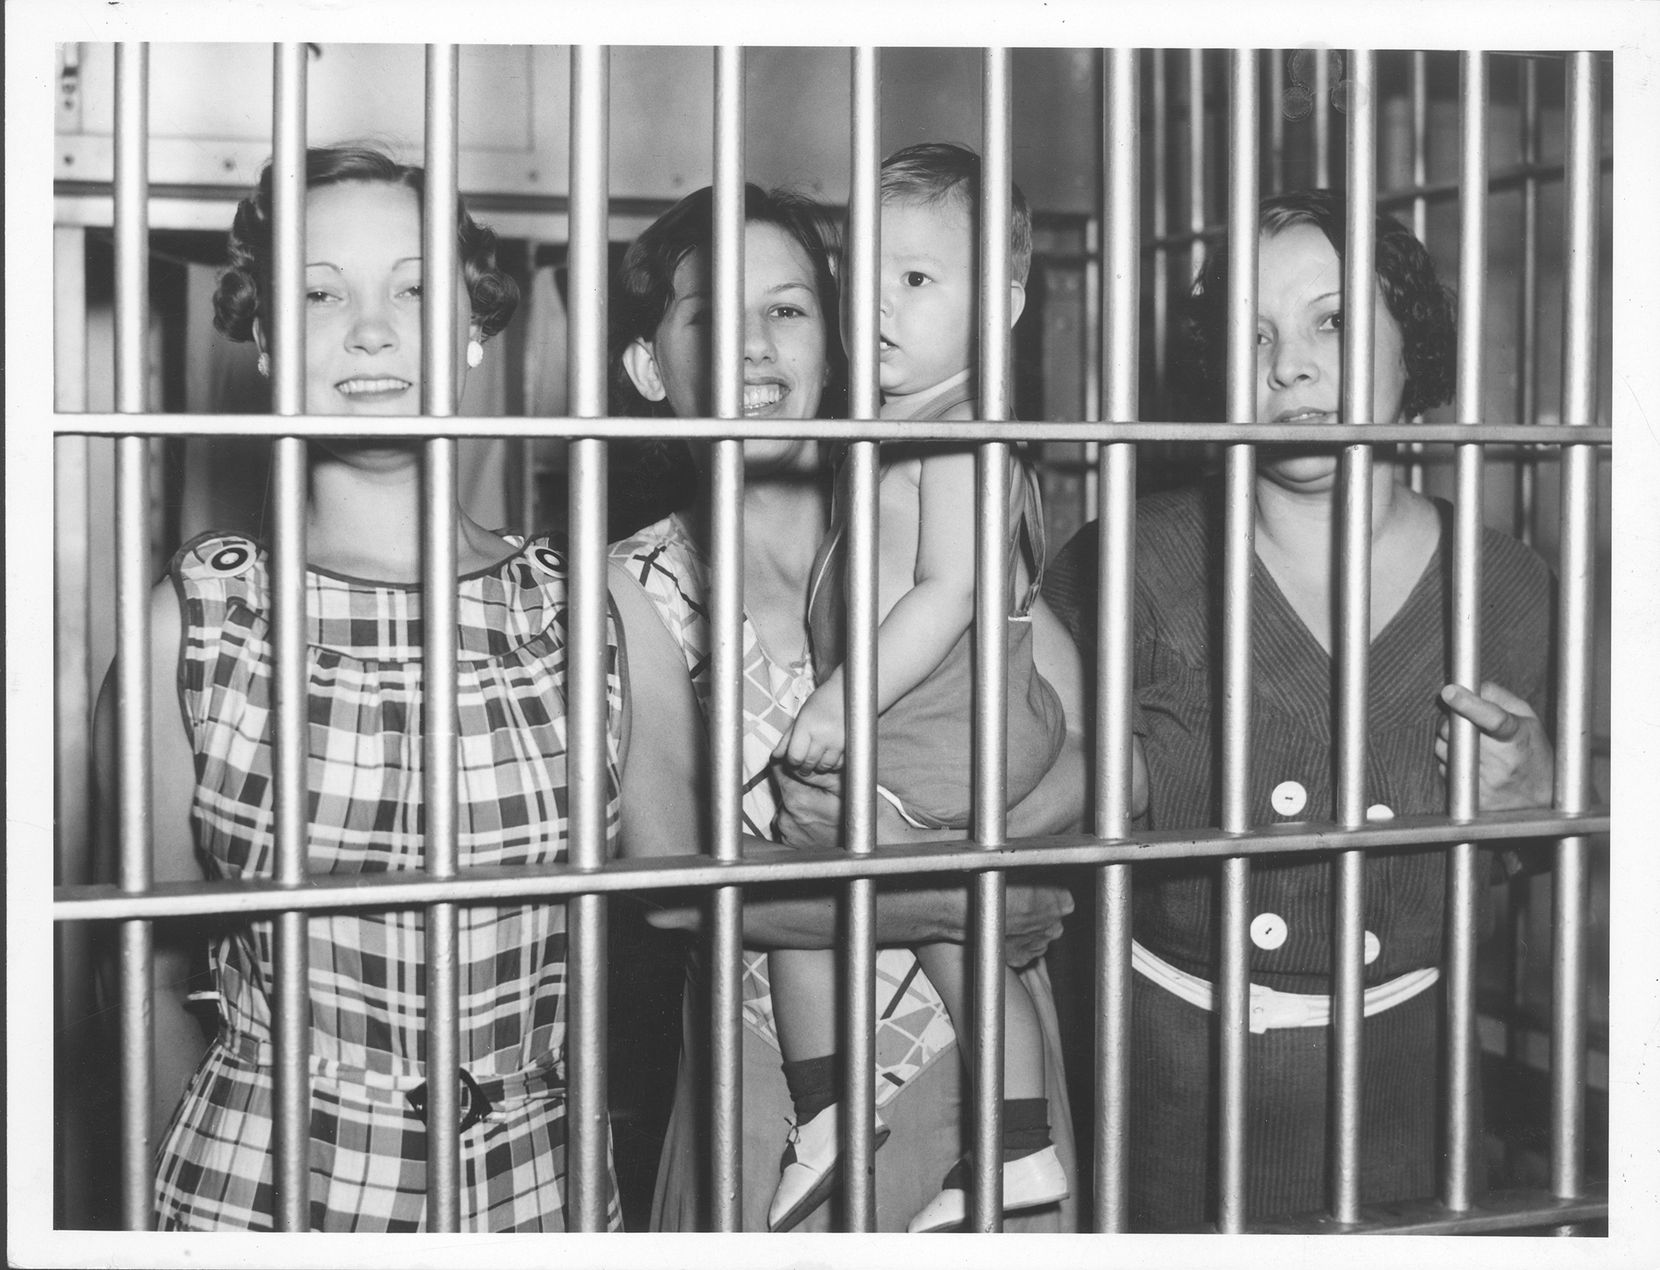 Charlotte Duncan, Jessie Burgett with son Roy, and May Sealey in the Dallas jail in 1935 for strike activities.